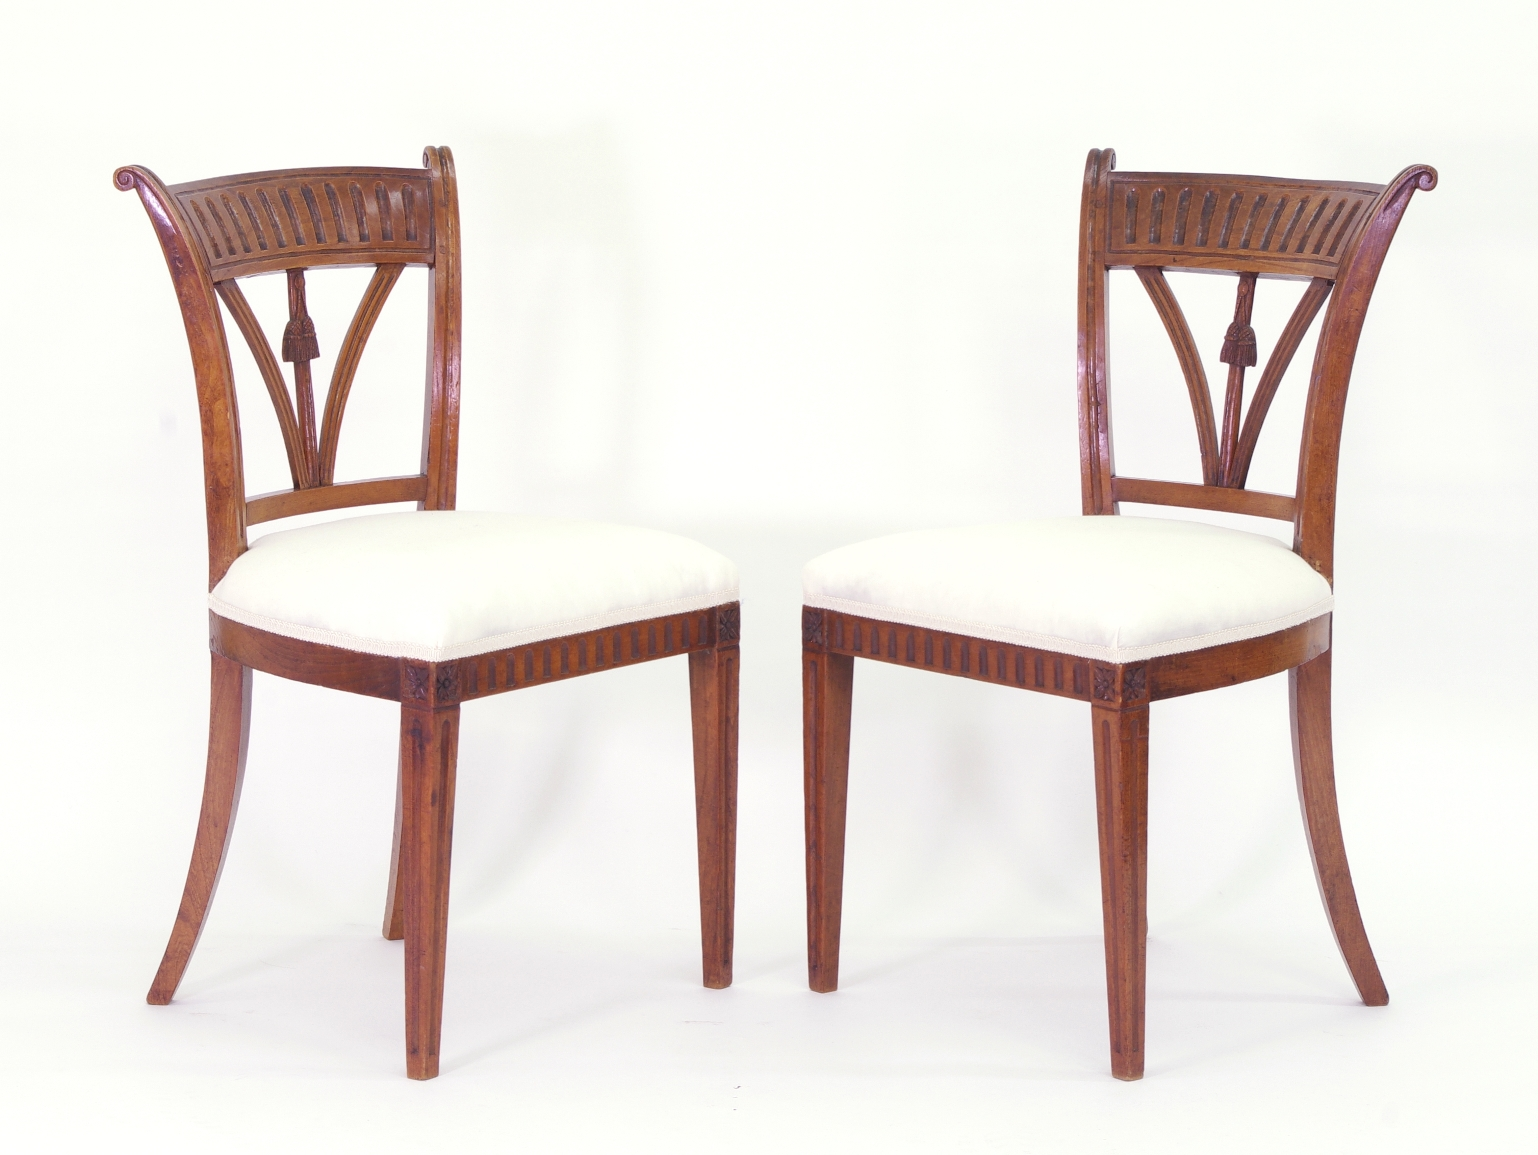 View 2: Set of Four Italian Side Chairs, c. 1800